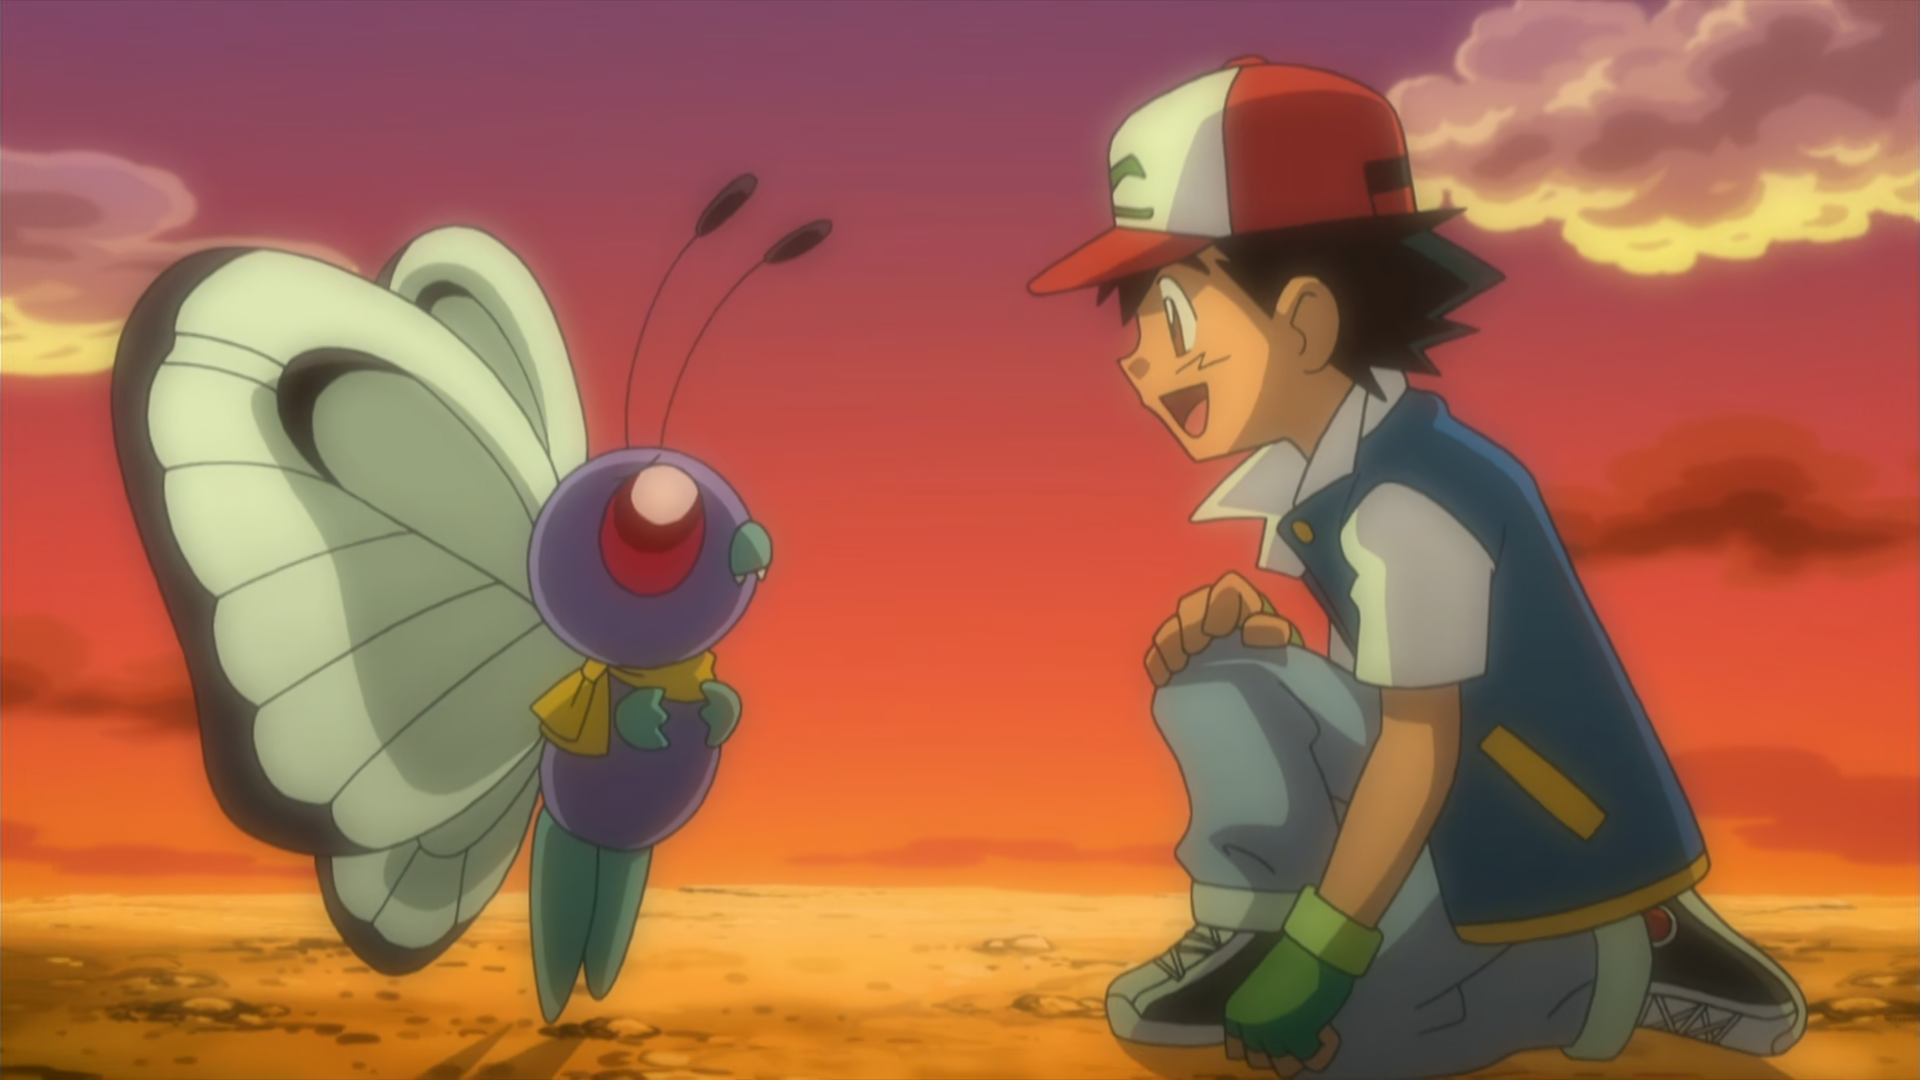 BW132: Butterfree and Me!